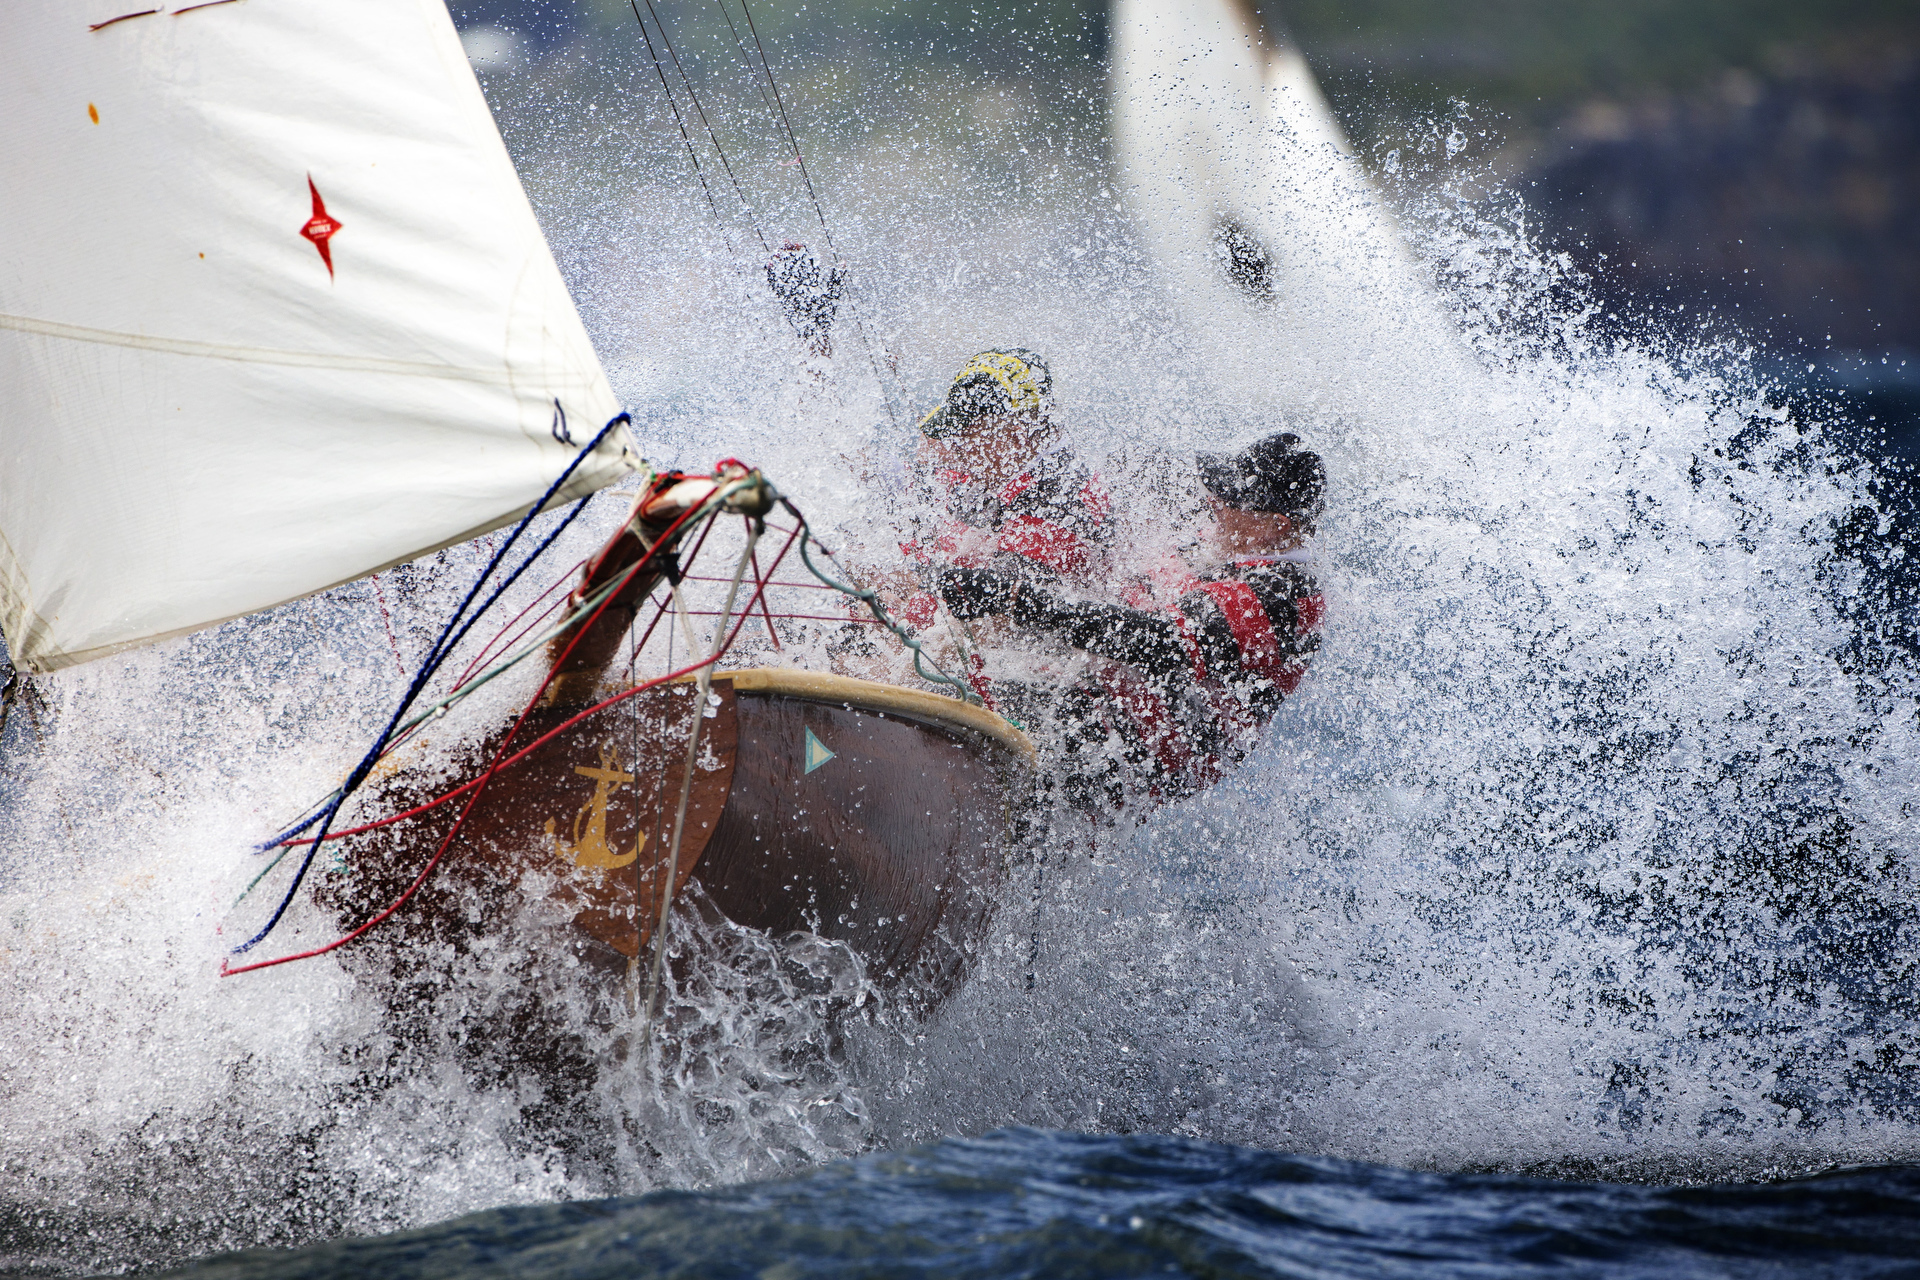 Sydney sailing photographer, aerial photography, classic yachts, historic 18ft skiffs,, yacht, regatta, ocean racing